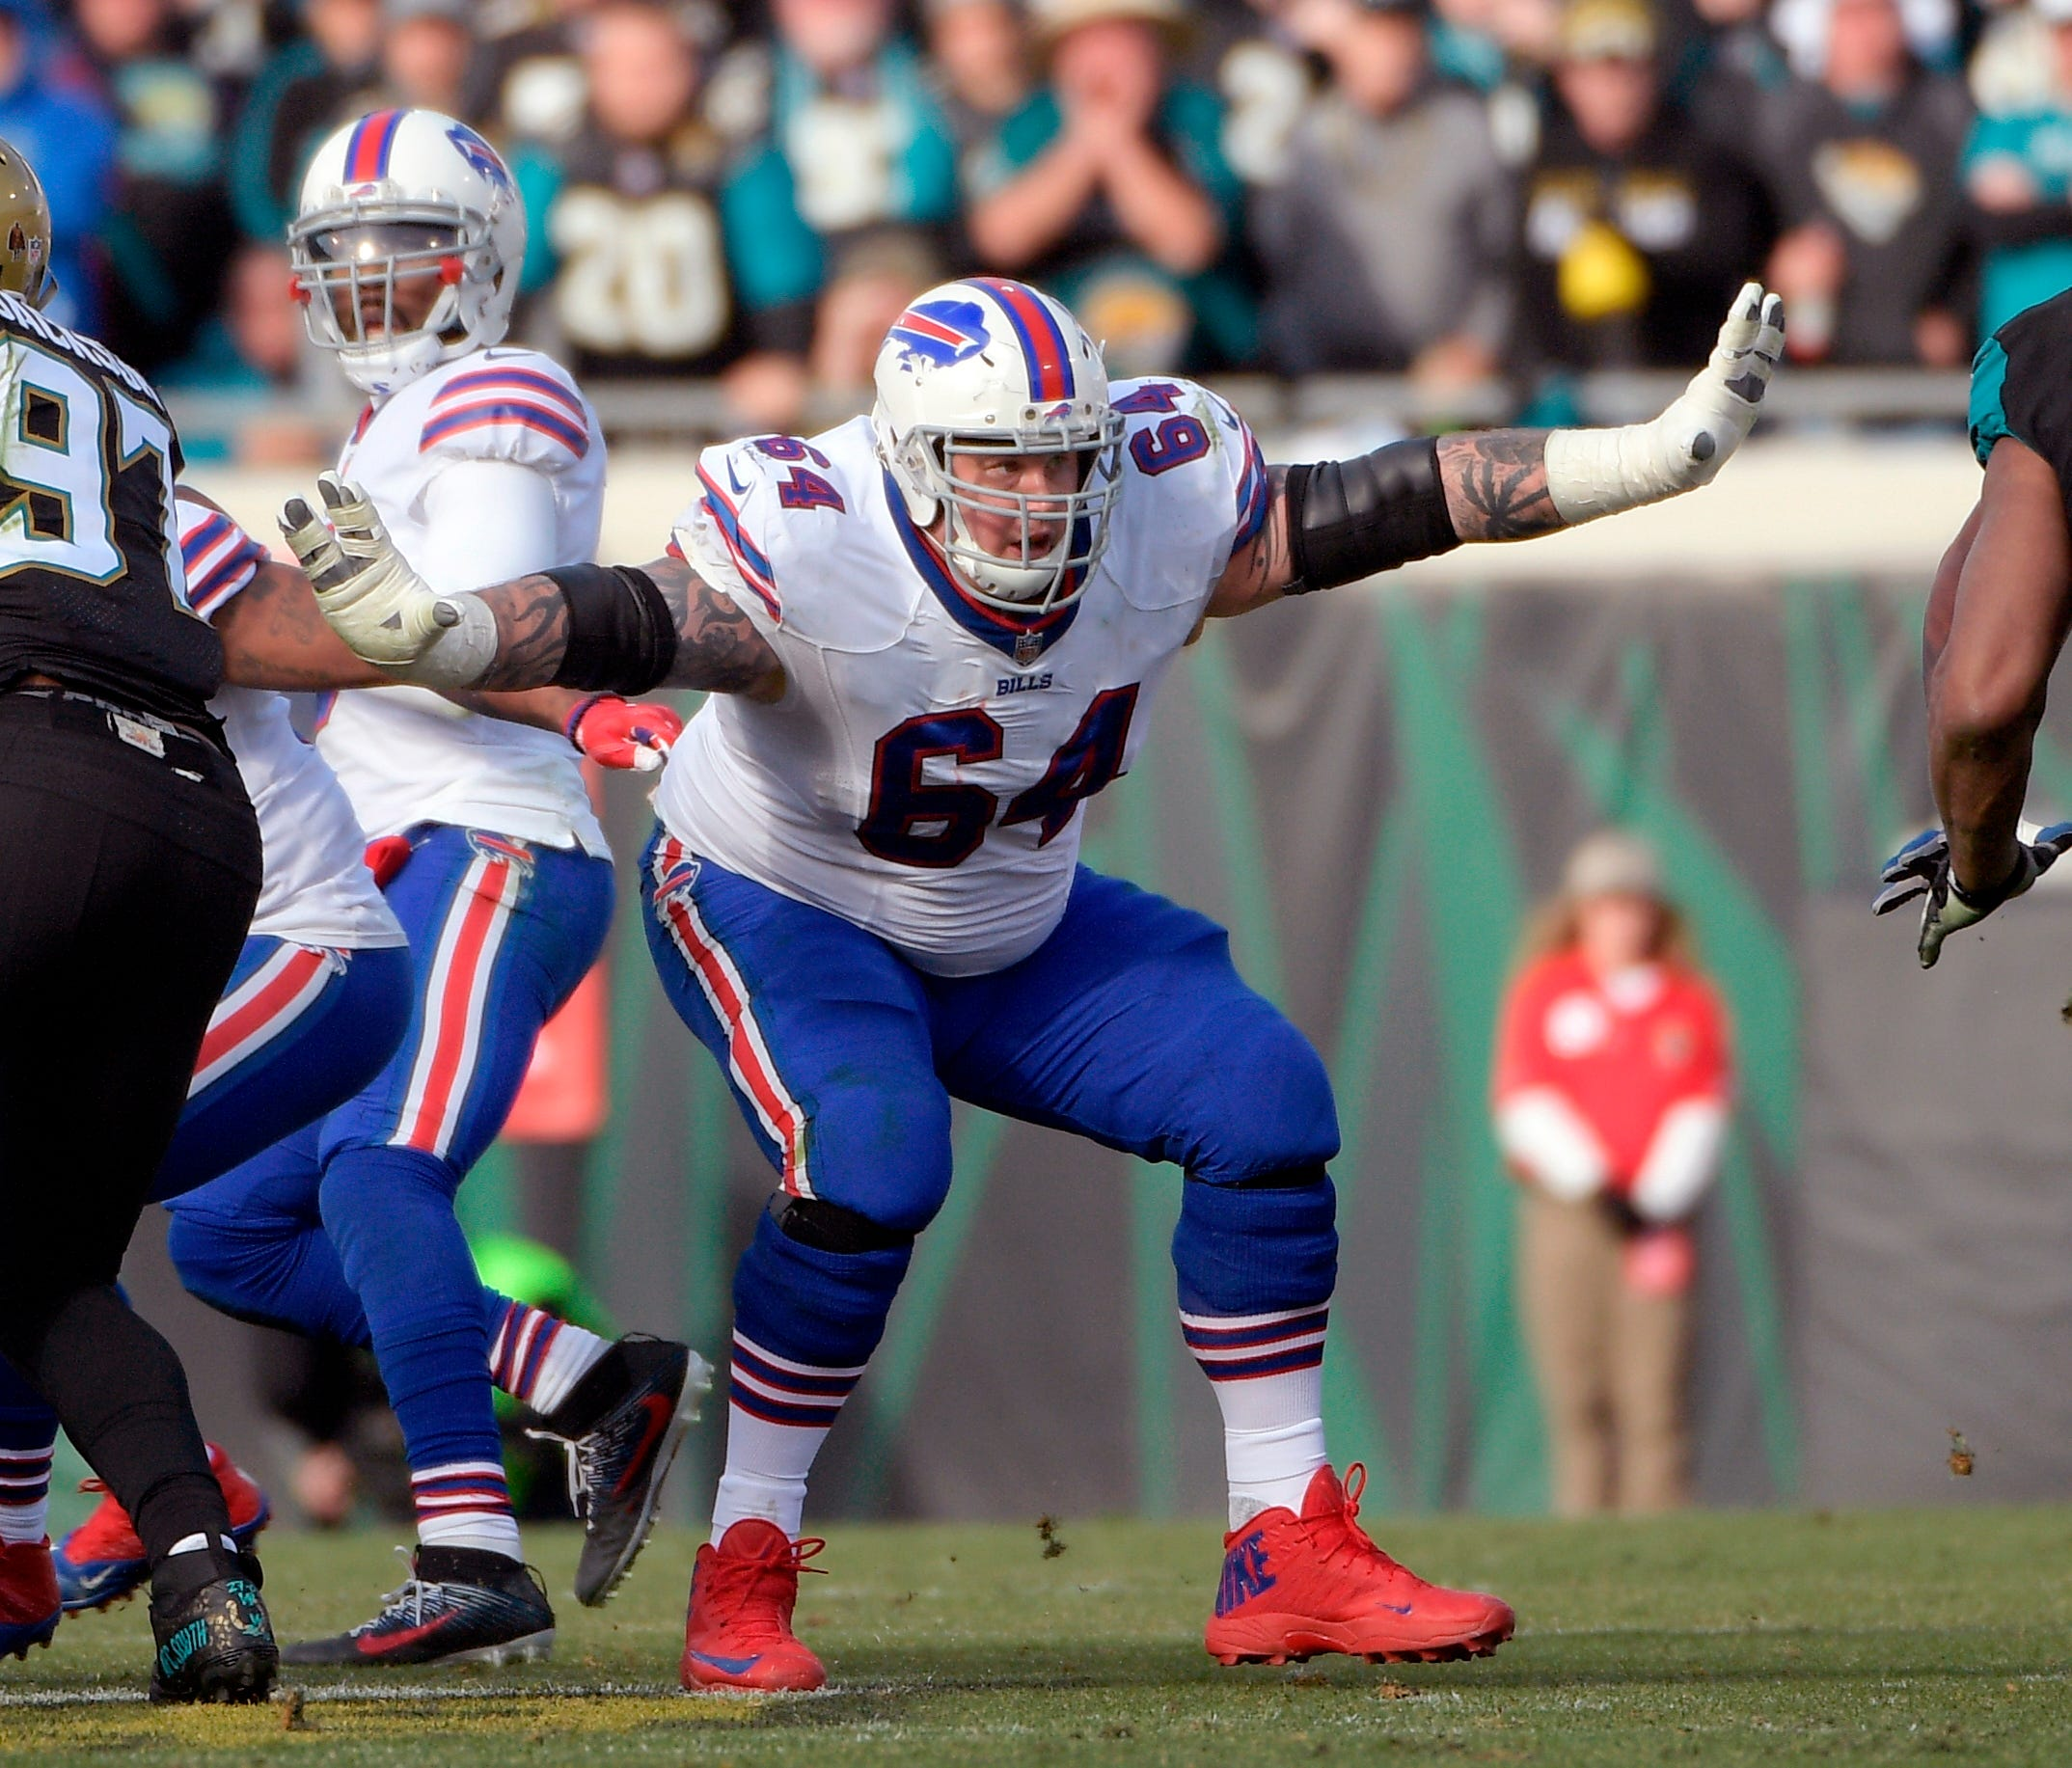 Raiders agree to 1-year deal with troubled guard Incognito